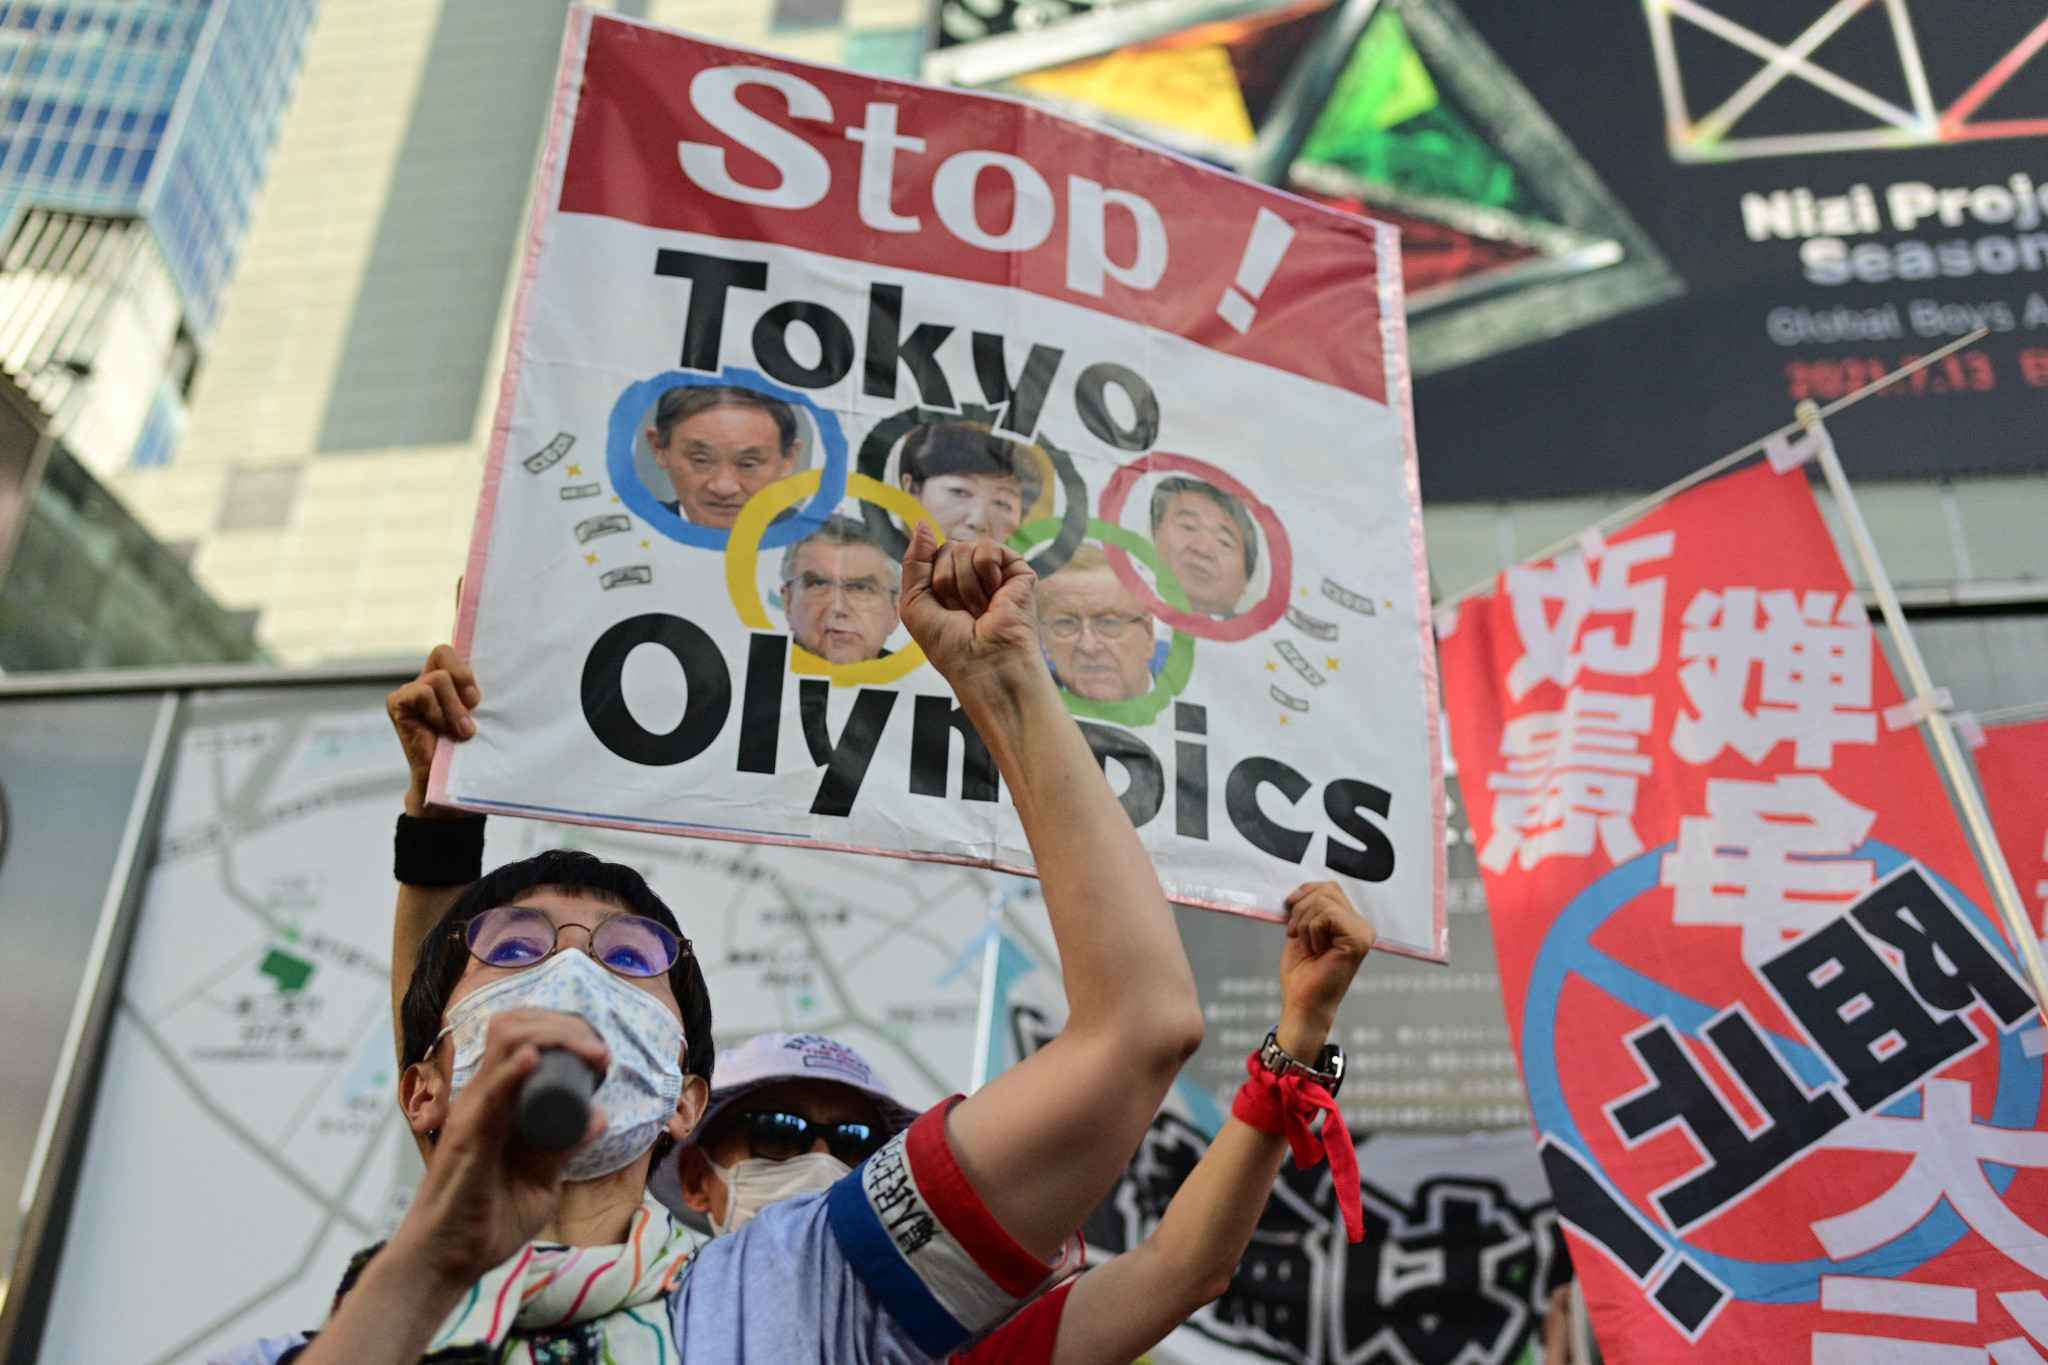 Protesters make voices heard at Tokyo 2020 Opening Ceremony